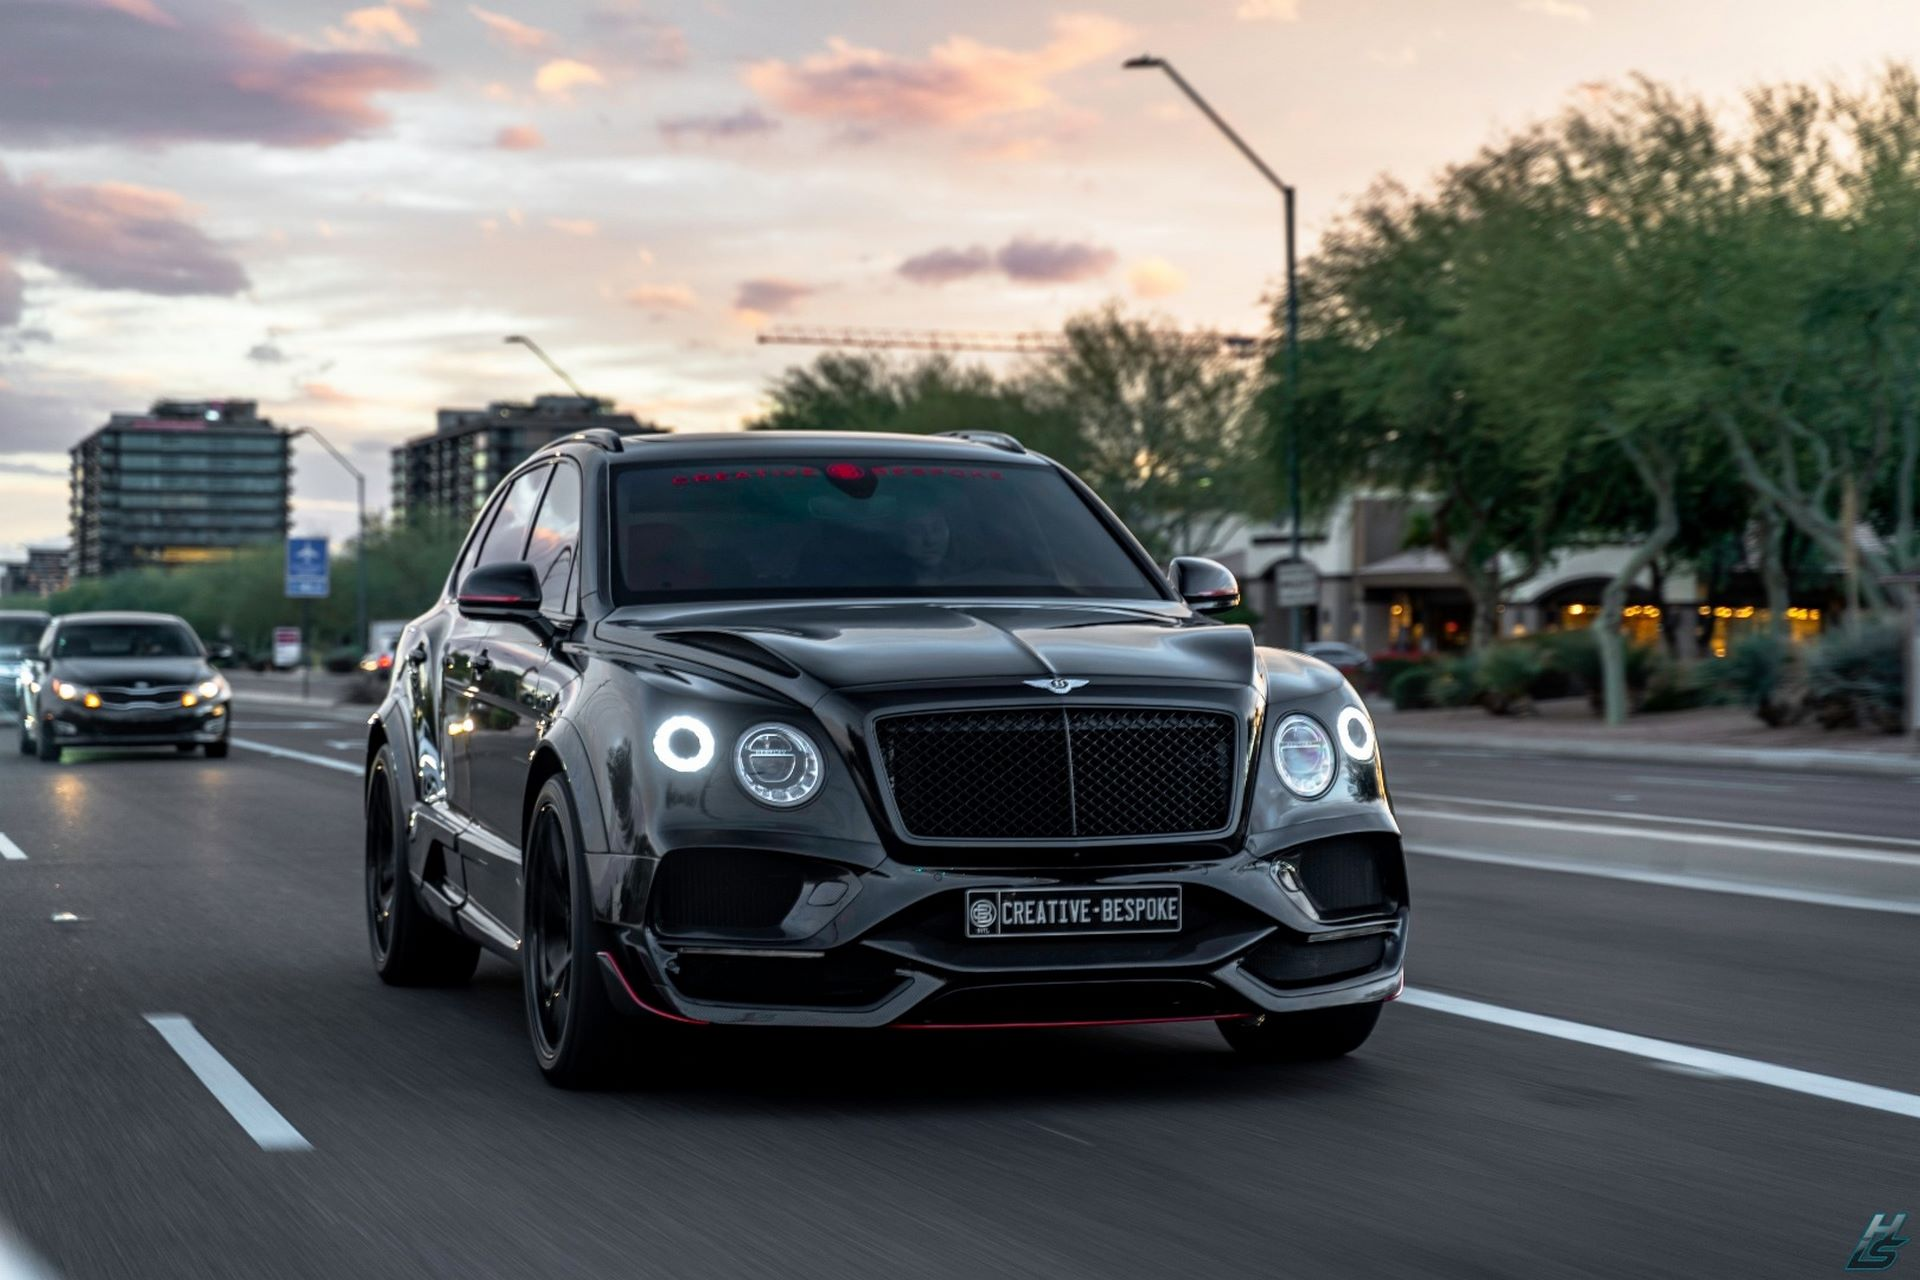 Bentley-Bentayga-by-Creative-Bespoke-46